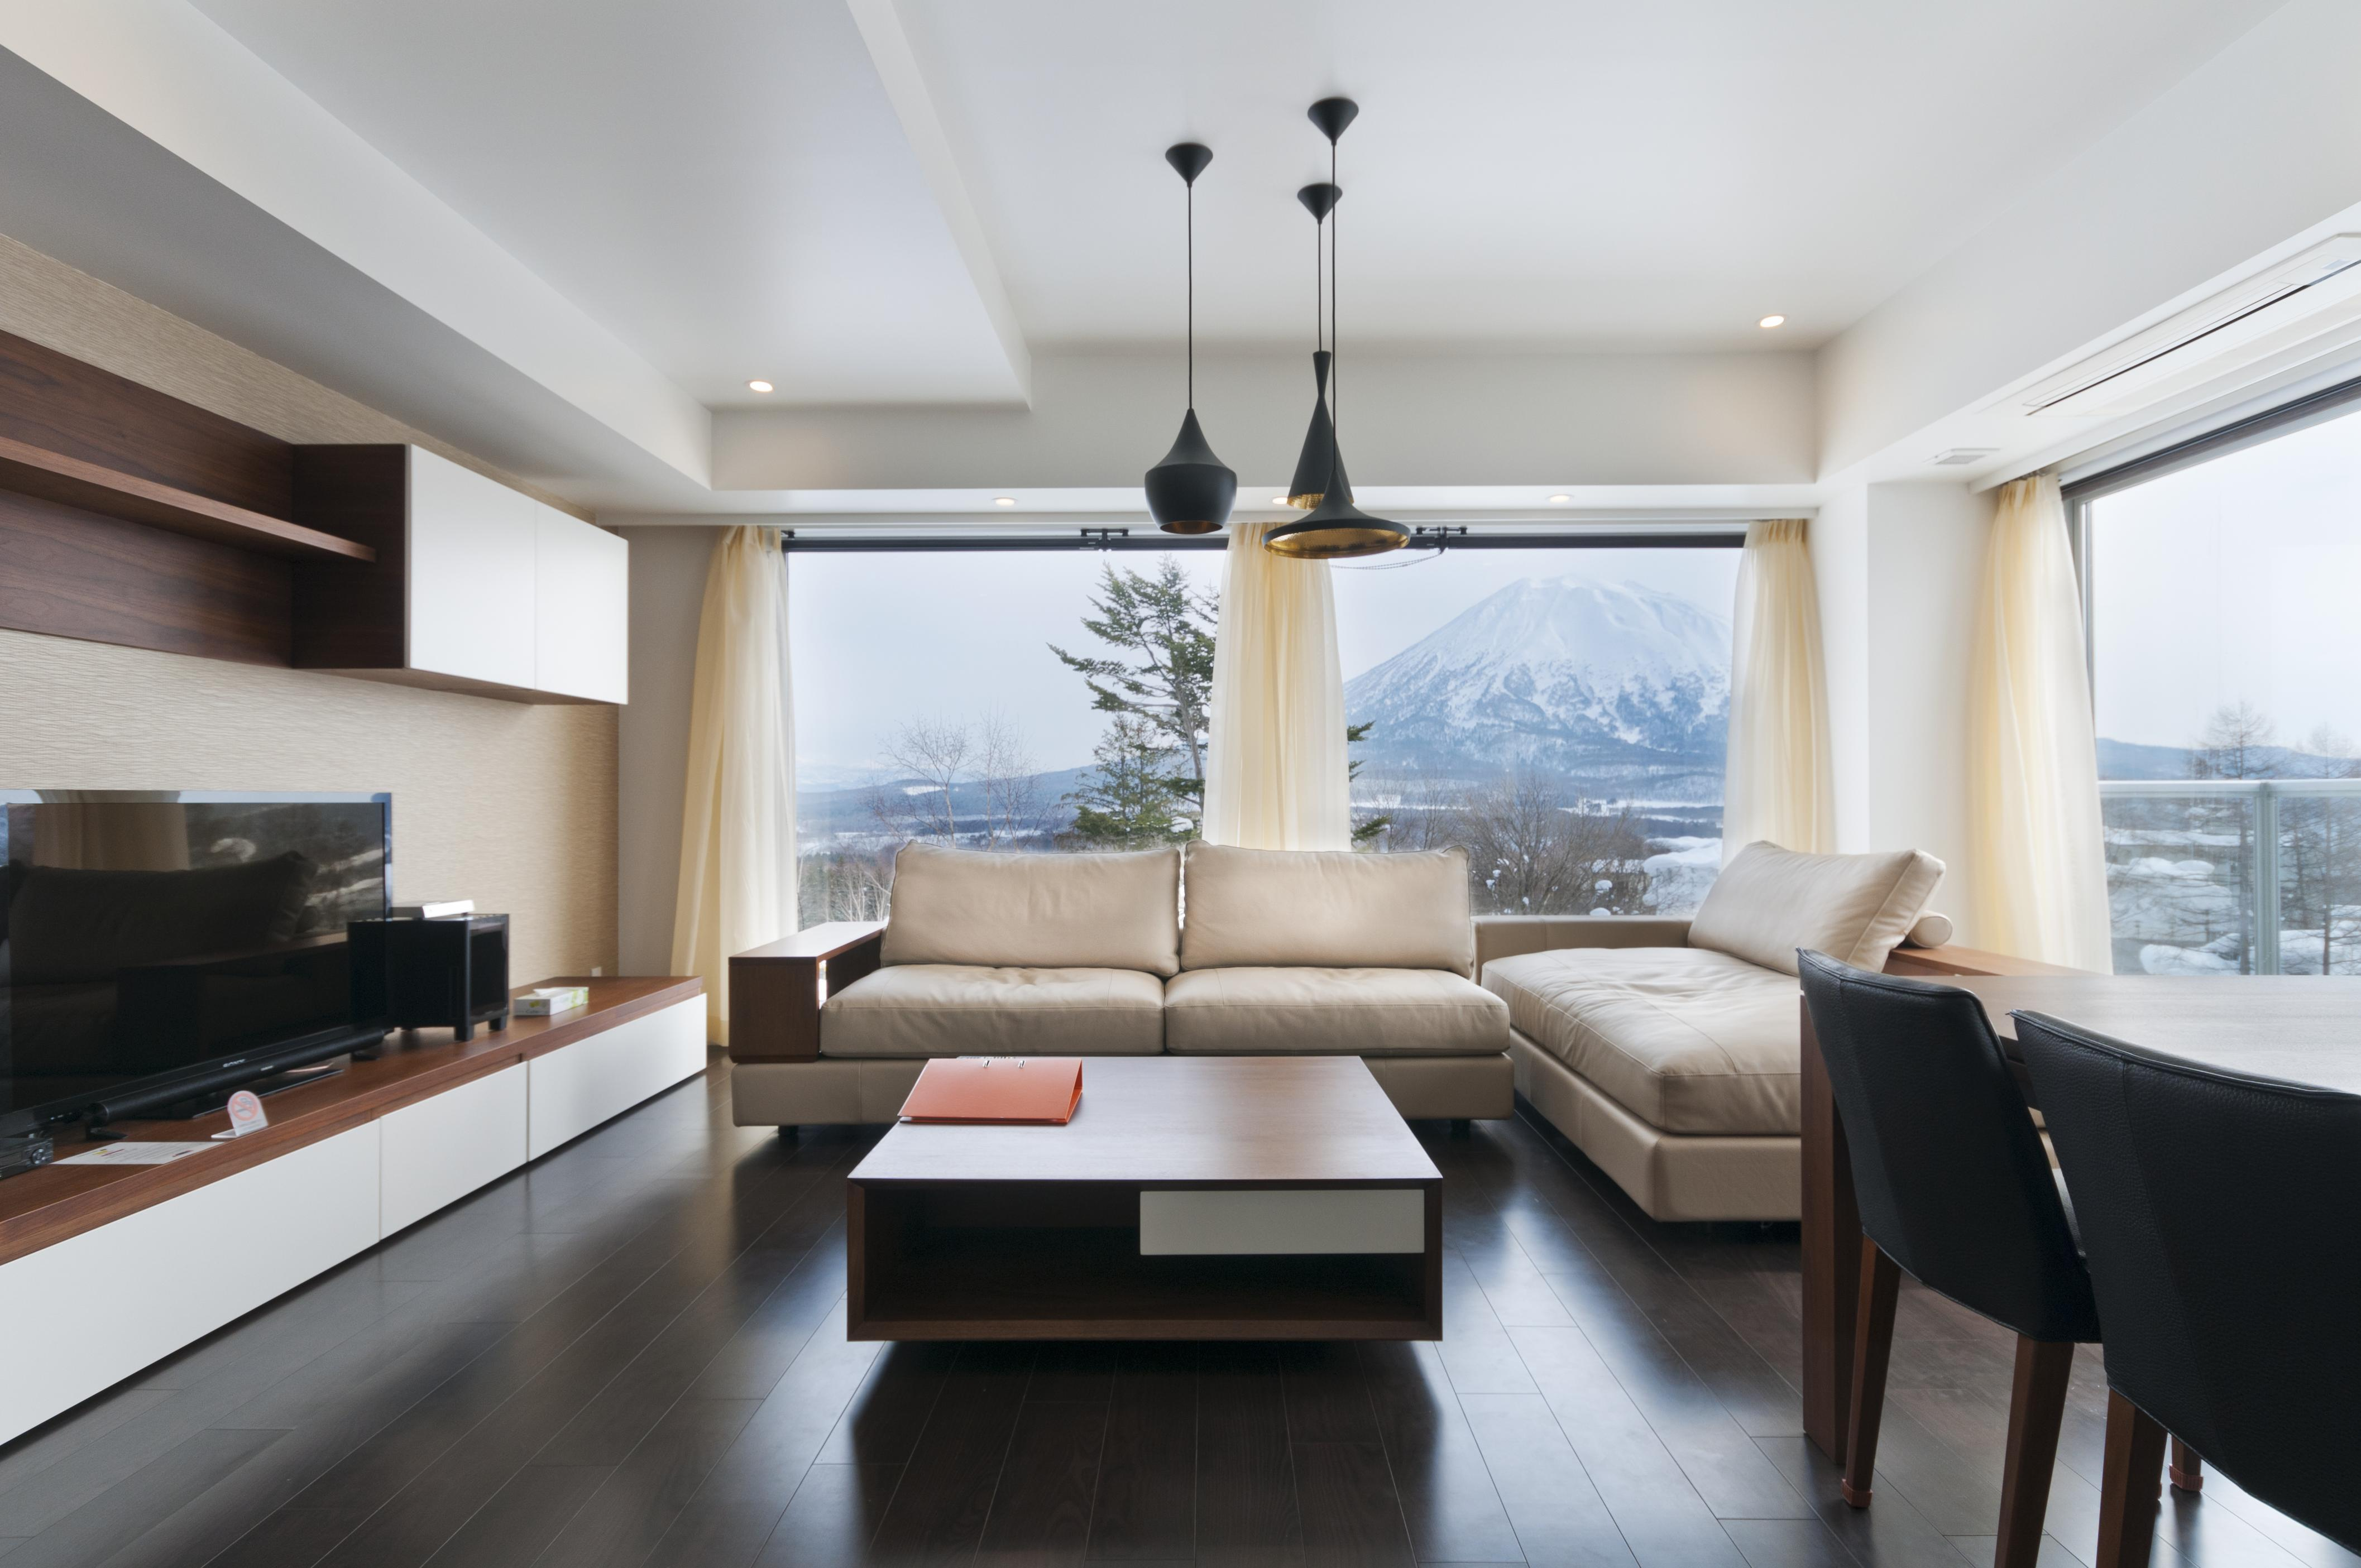 The living room with a view of Mt Yotei in a 2 bedroom apartment in Kizuna, Niseko.